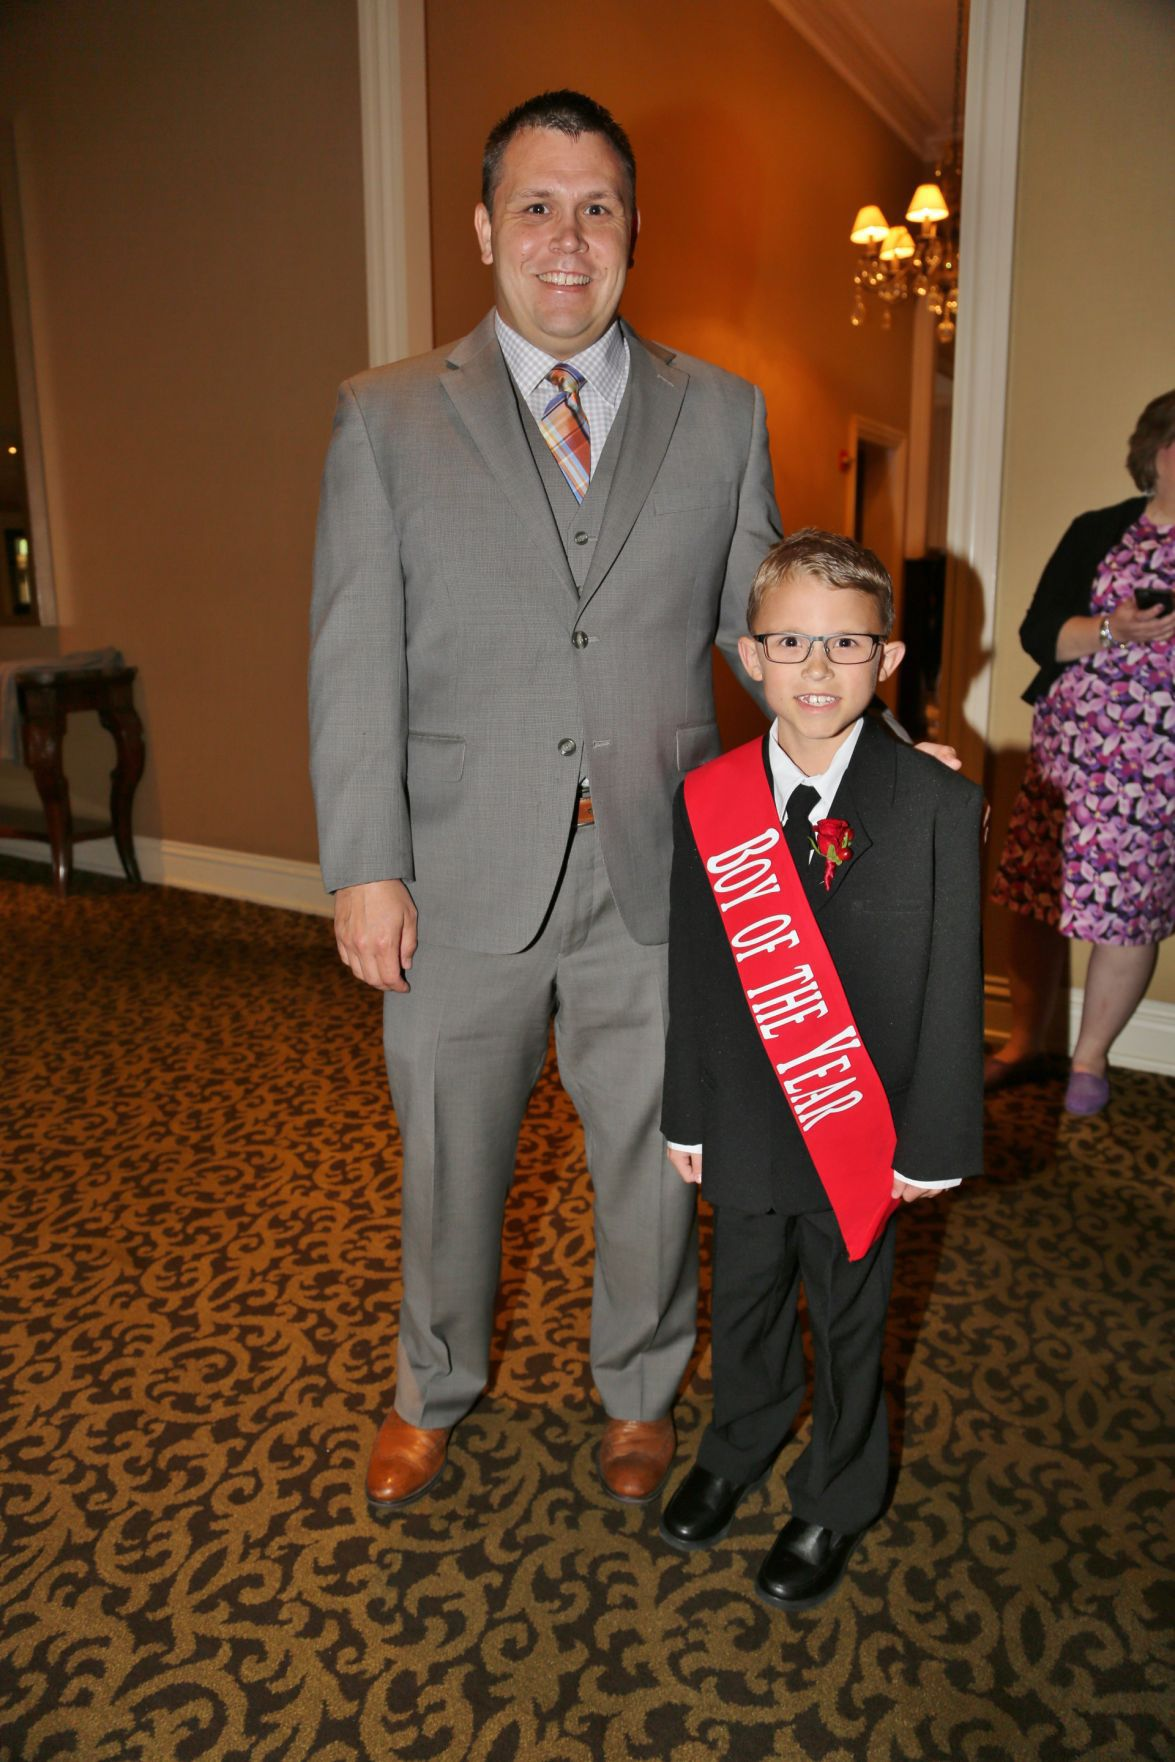 Brian and Bryce Schottel, Boy of the Year